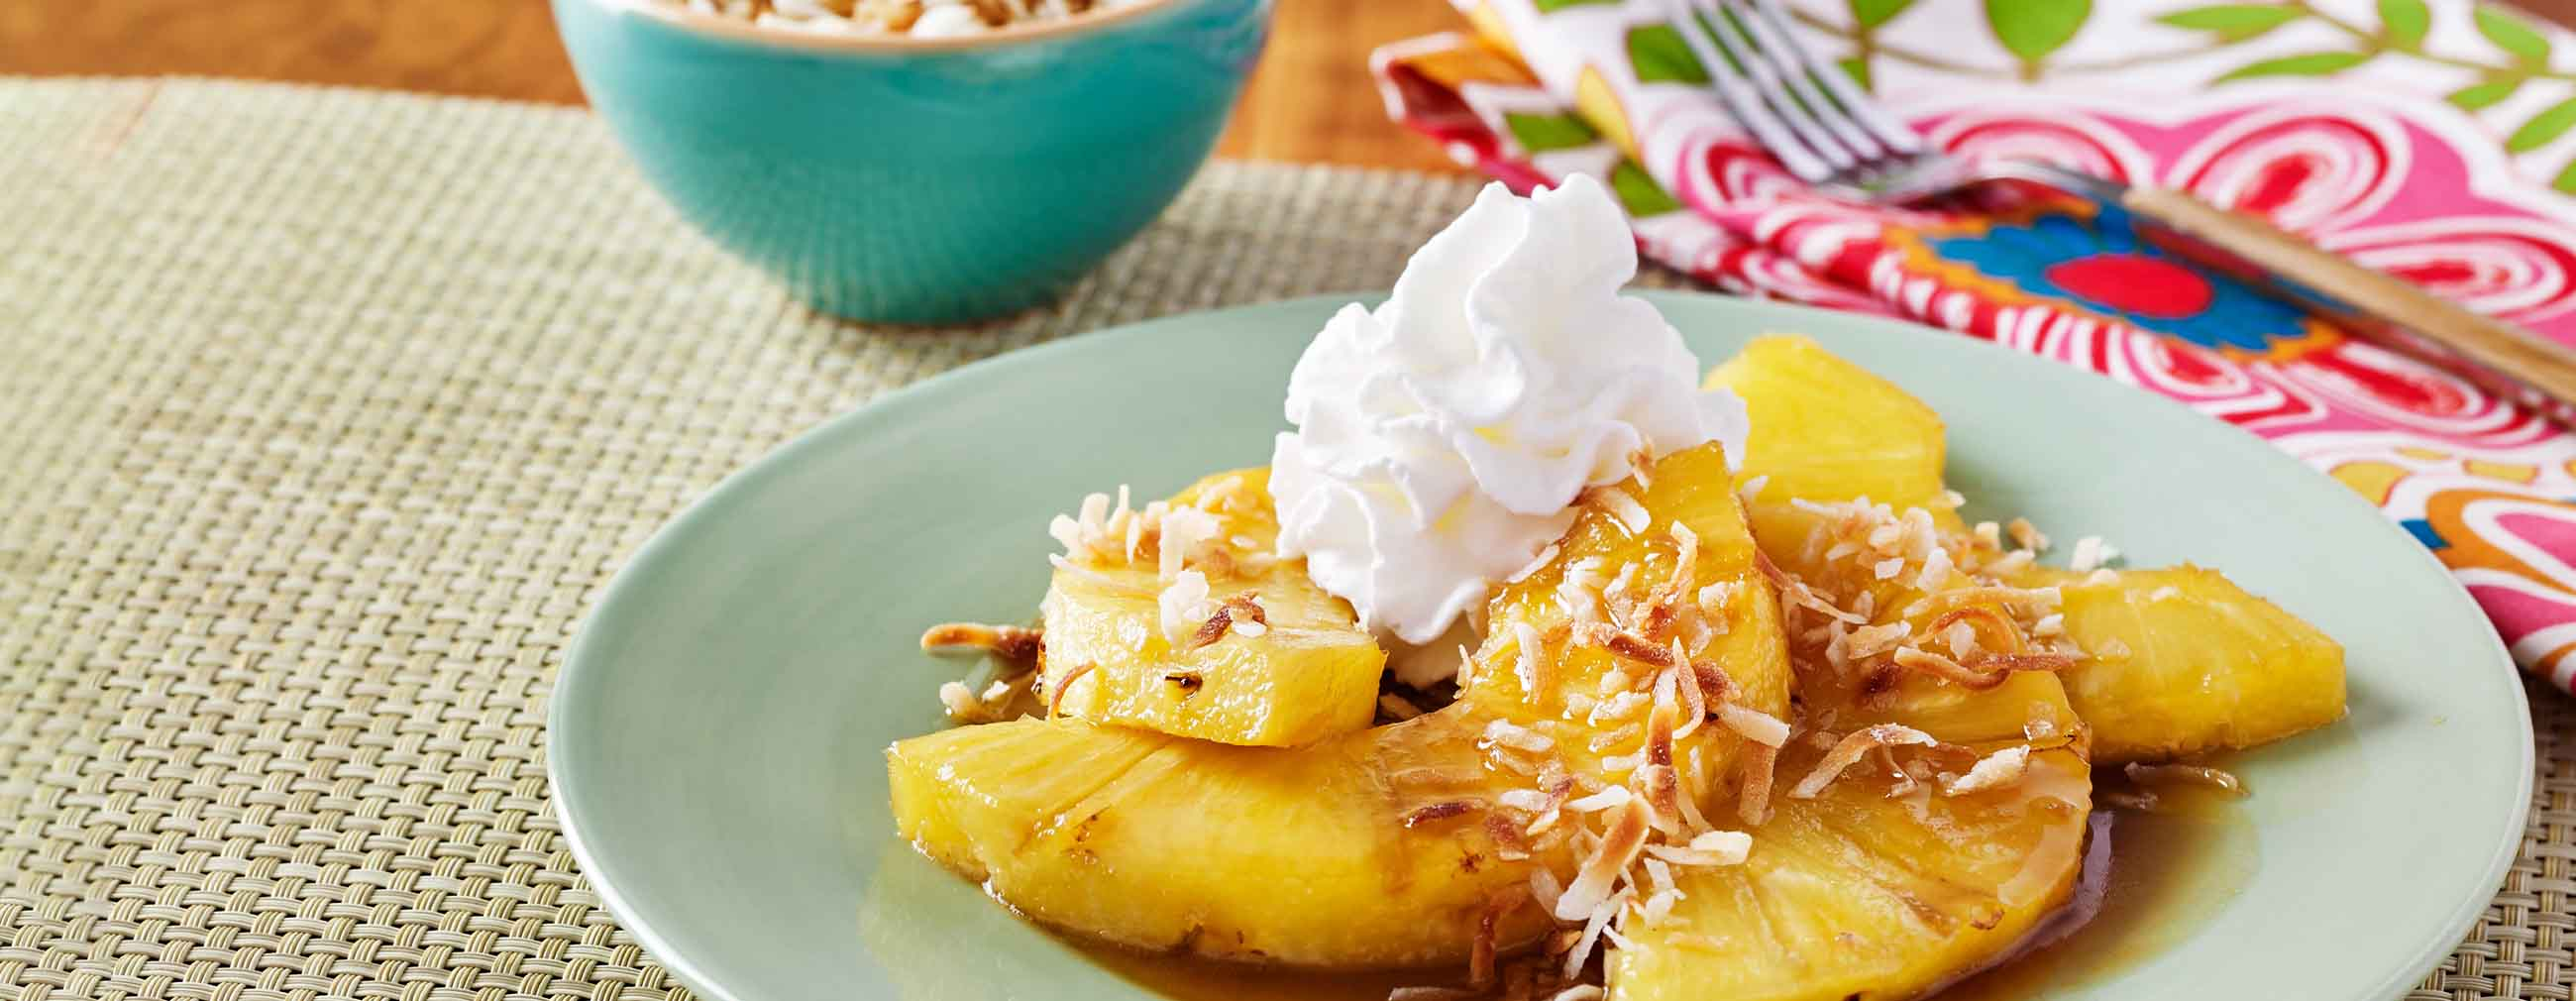 Caramelized Pineapple with Toasted Coconut